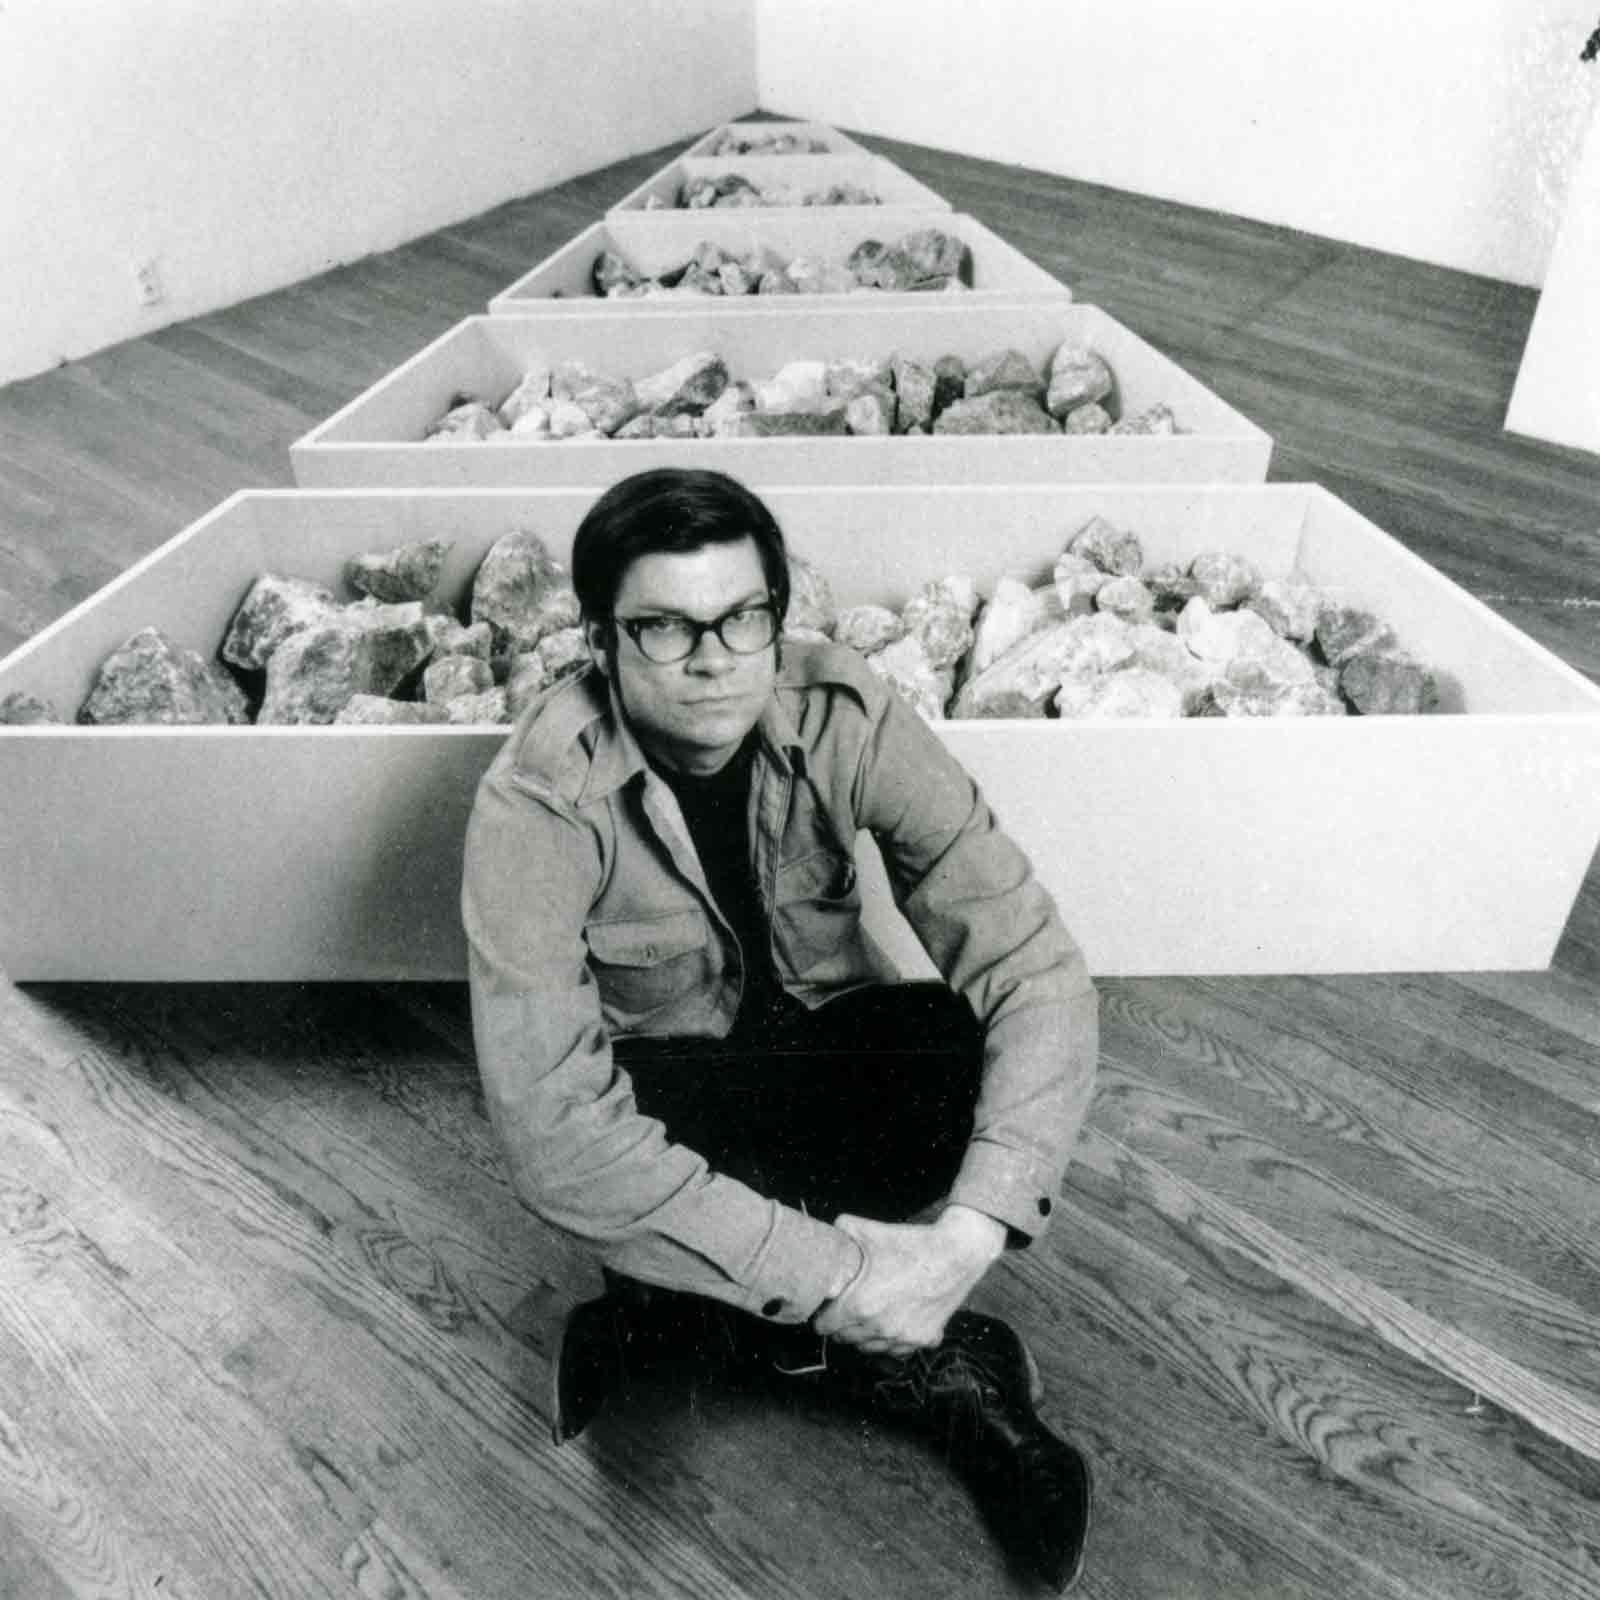 Robert Smithson, in a gallery environment, next to his work, Franklin Nonsite